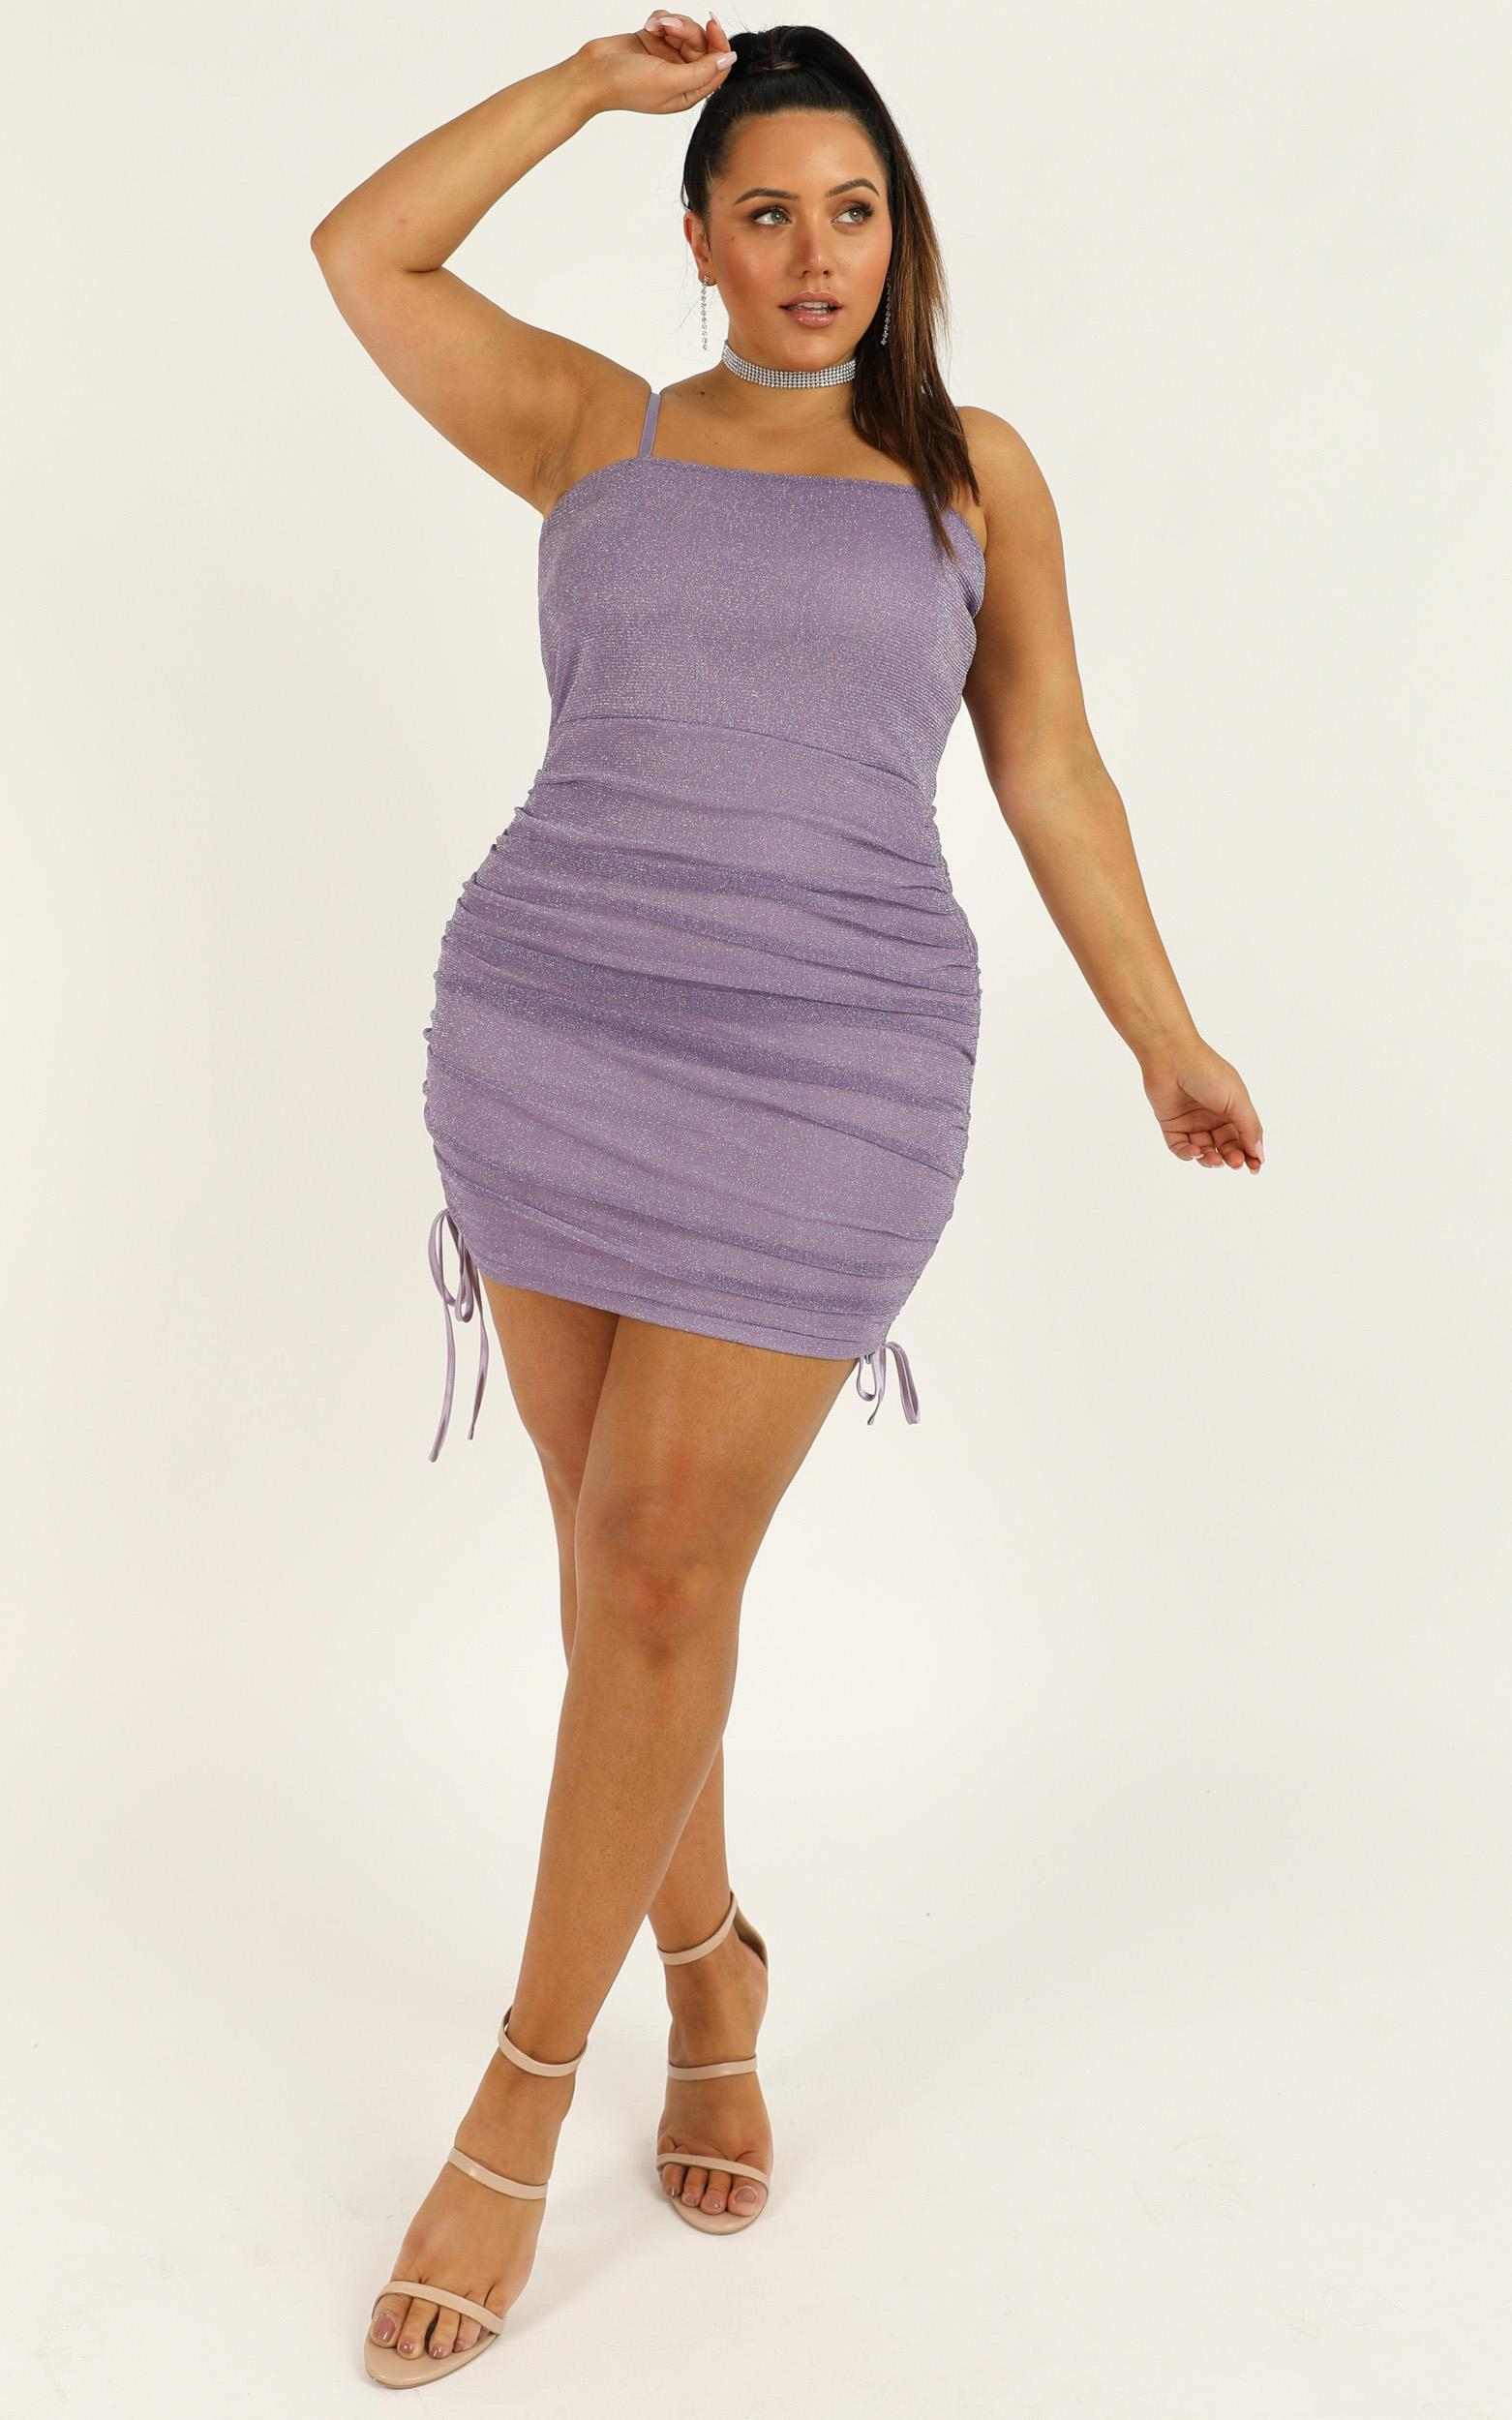 Time Stands Still Dress In lilac mesh lurex - 20 (XXXXL), Purple, hi-res image number null